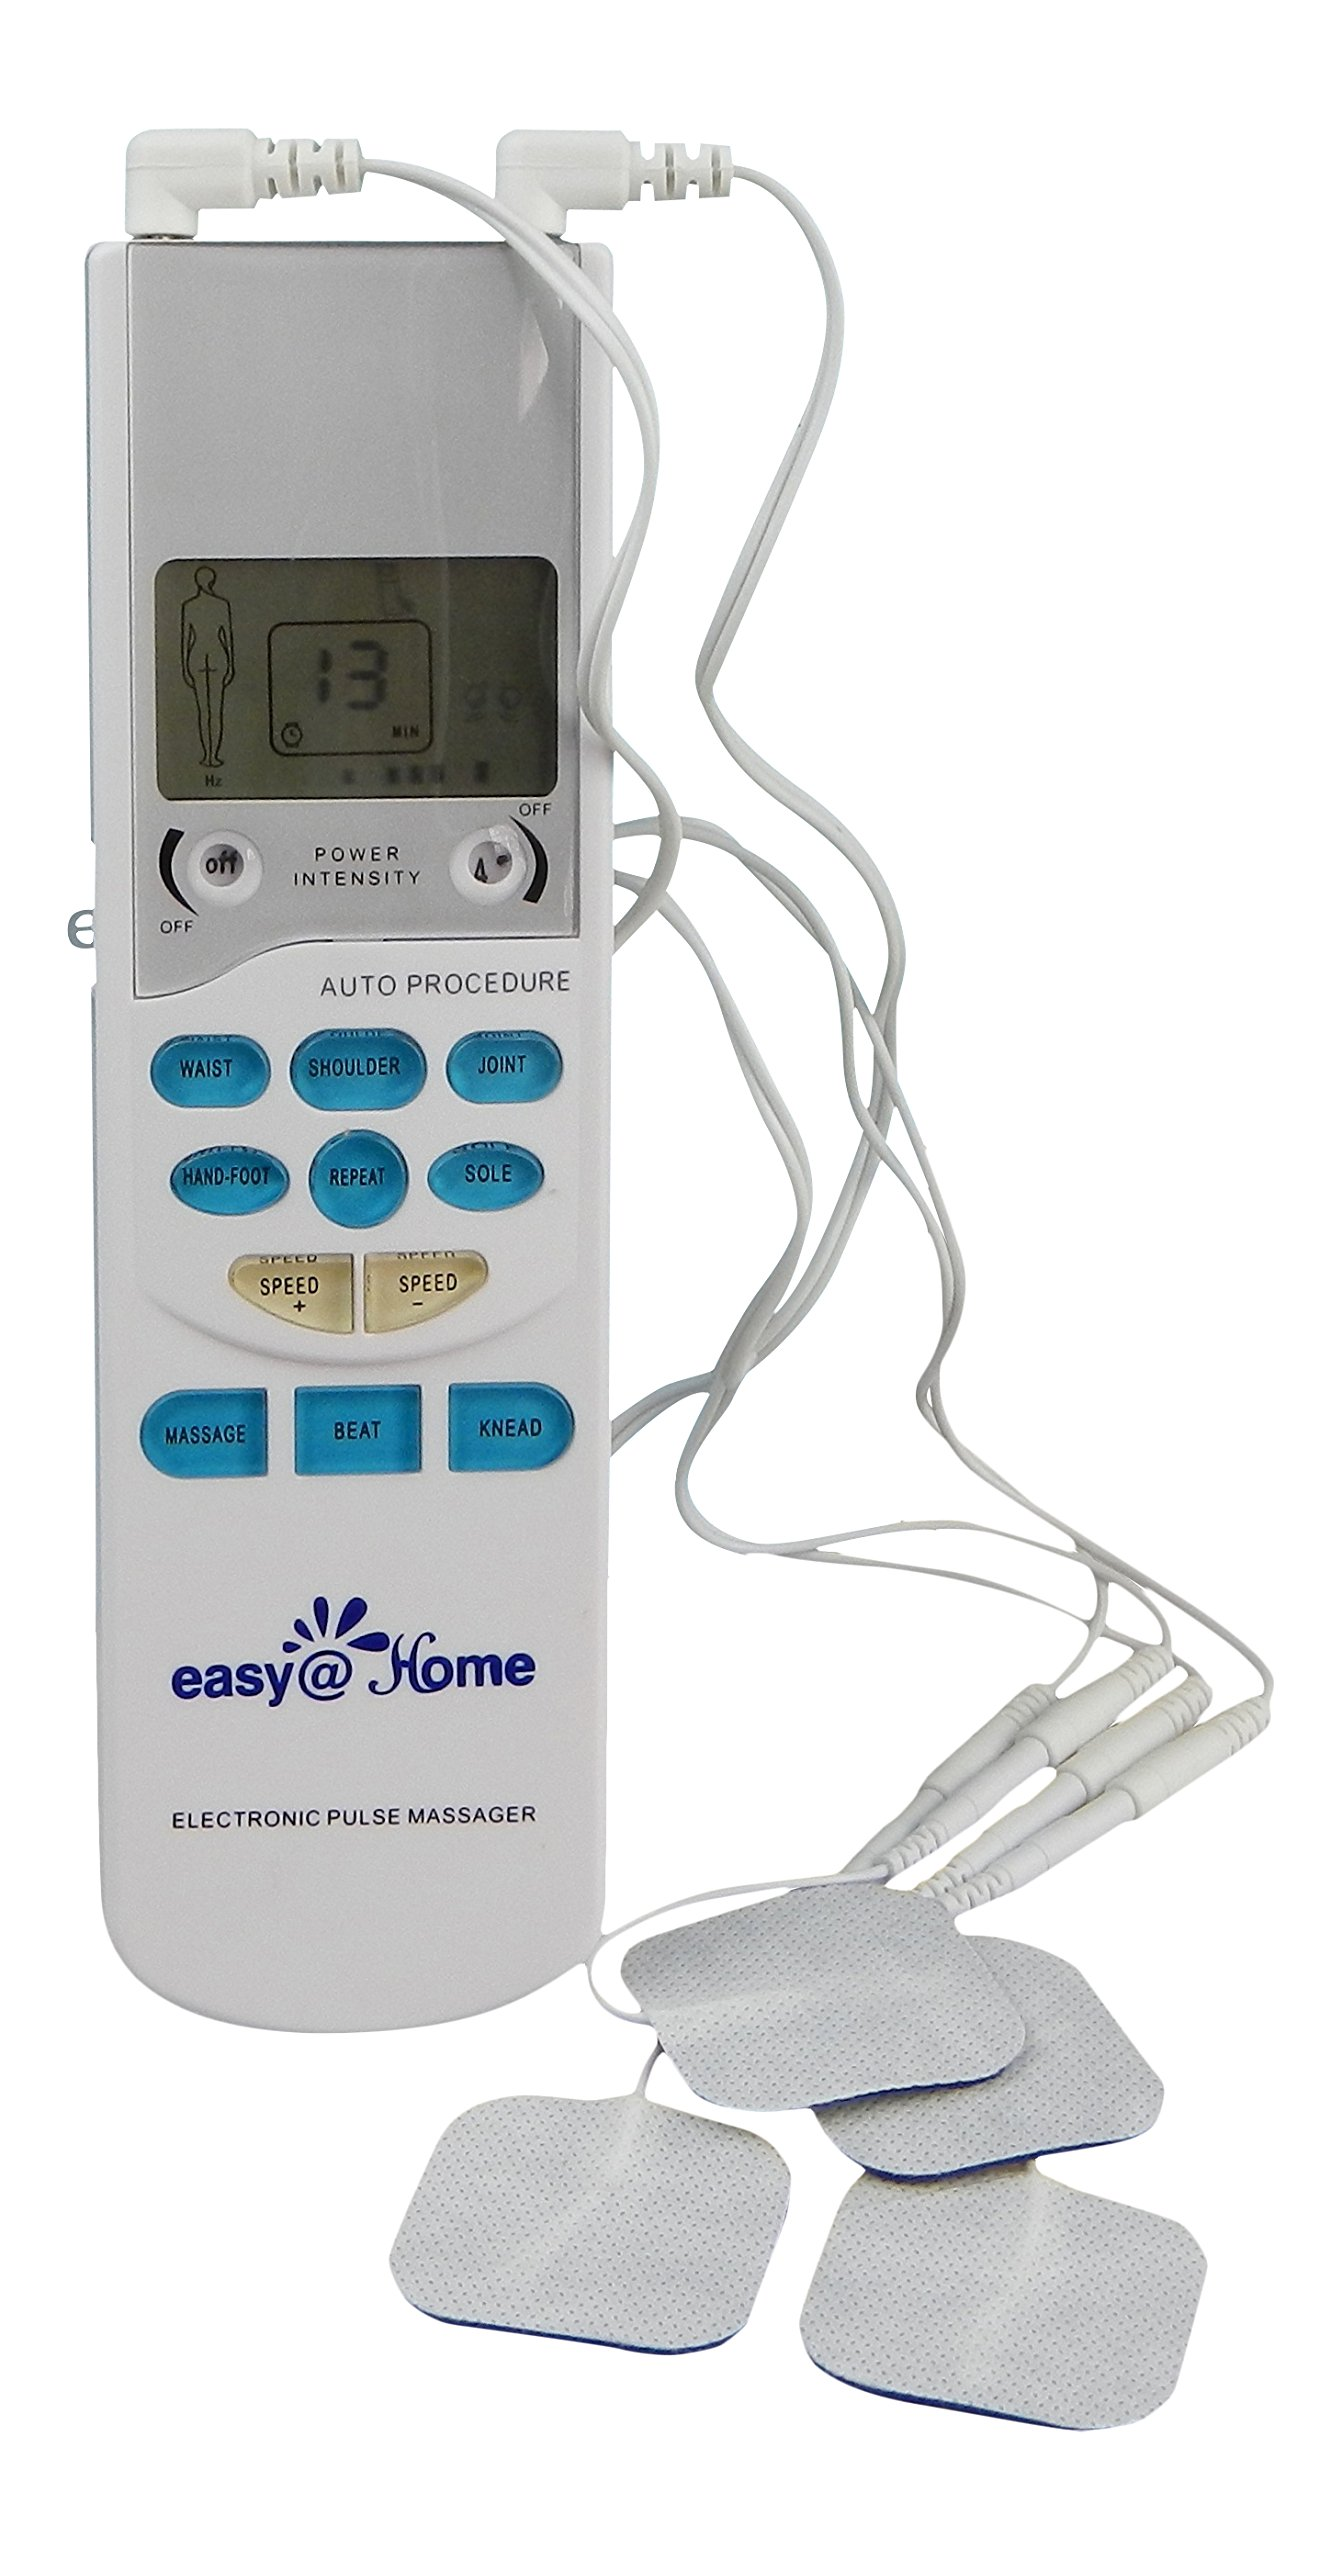 TENS Unit Muscle Stimulator - Easy@Home Electronic Pulse Massager - FDA approved for OTC Use handheld Pain Relief therapy Device – Pain Management on the Shoulder, Joint, Back, Leg&more - #EHE009